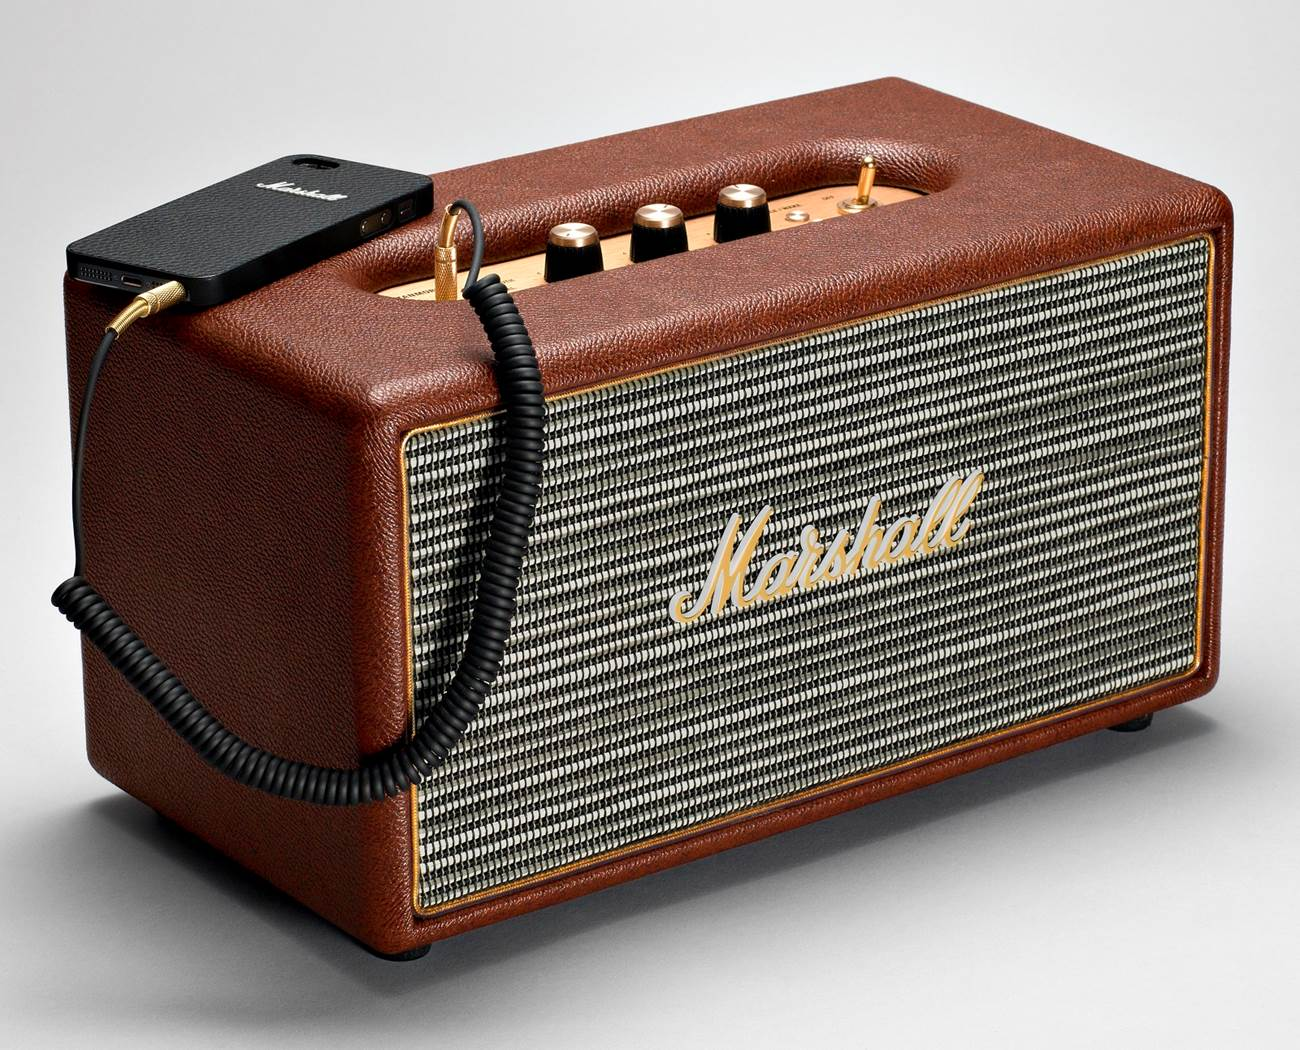 Marshall Stanmore Home Bluetooth Speaker